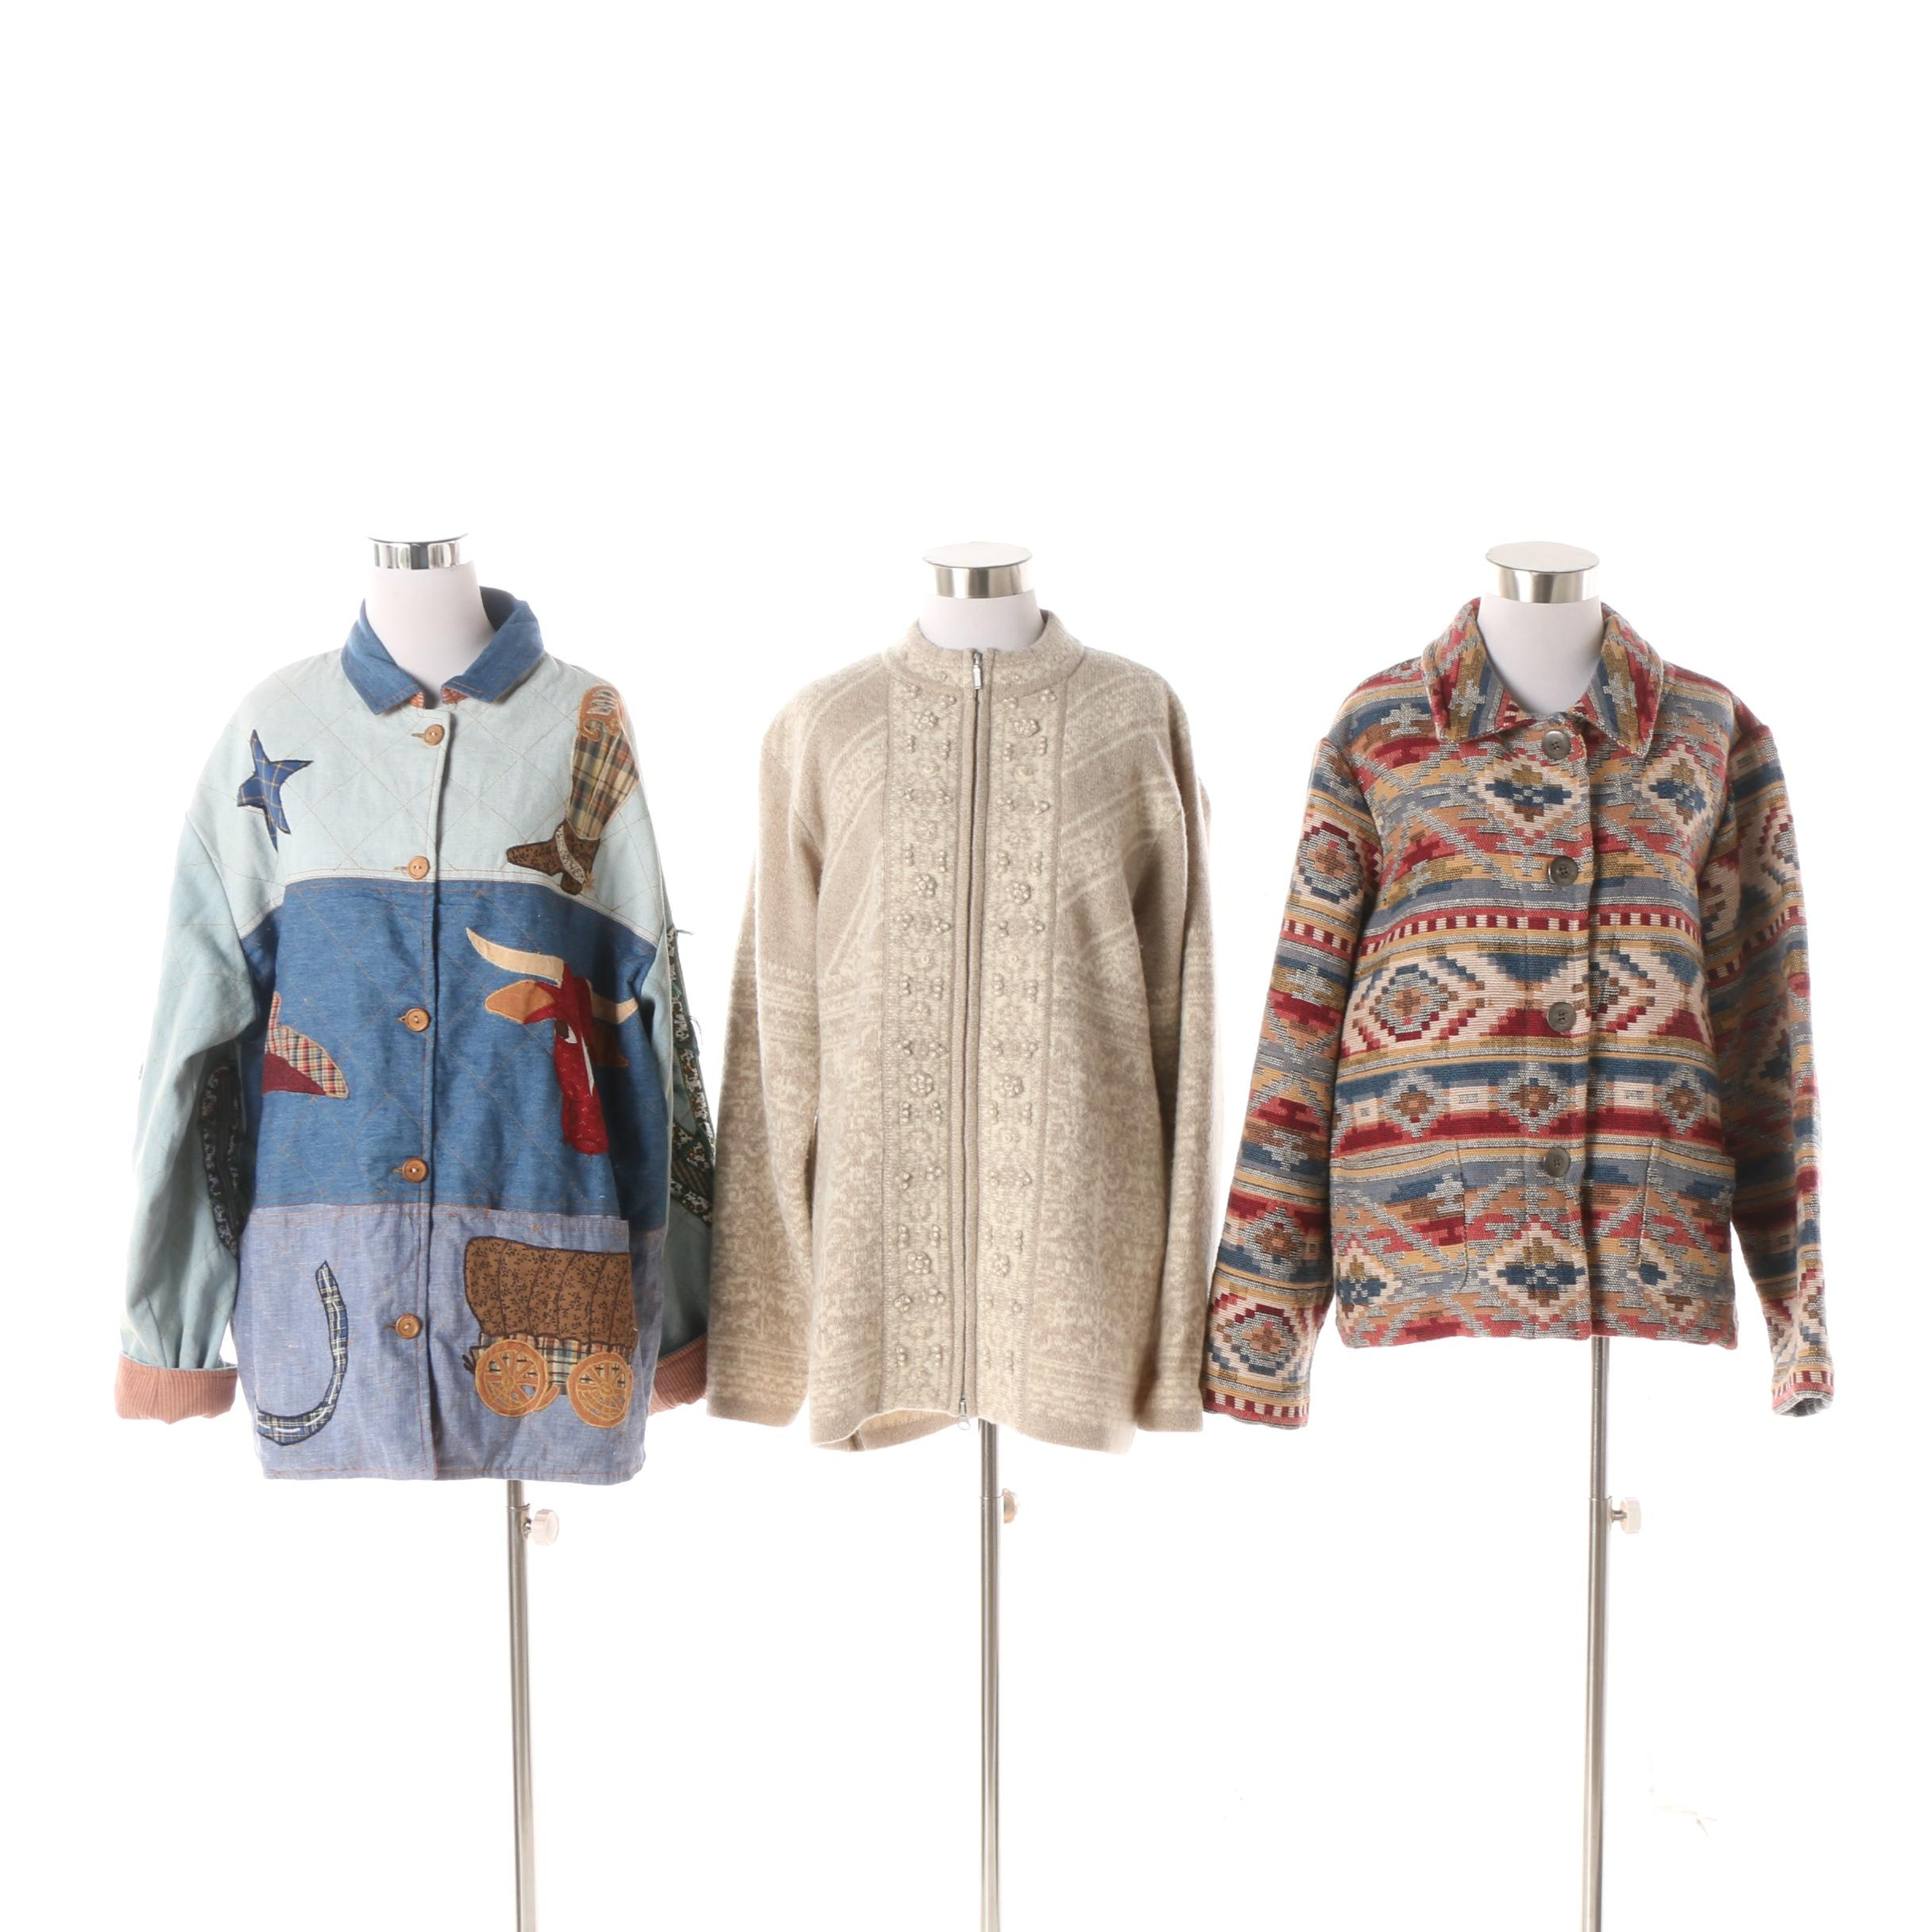 Women's Jackets including Pendleton Originals and Chico's Design